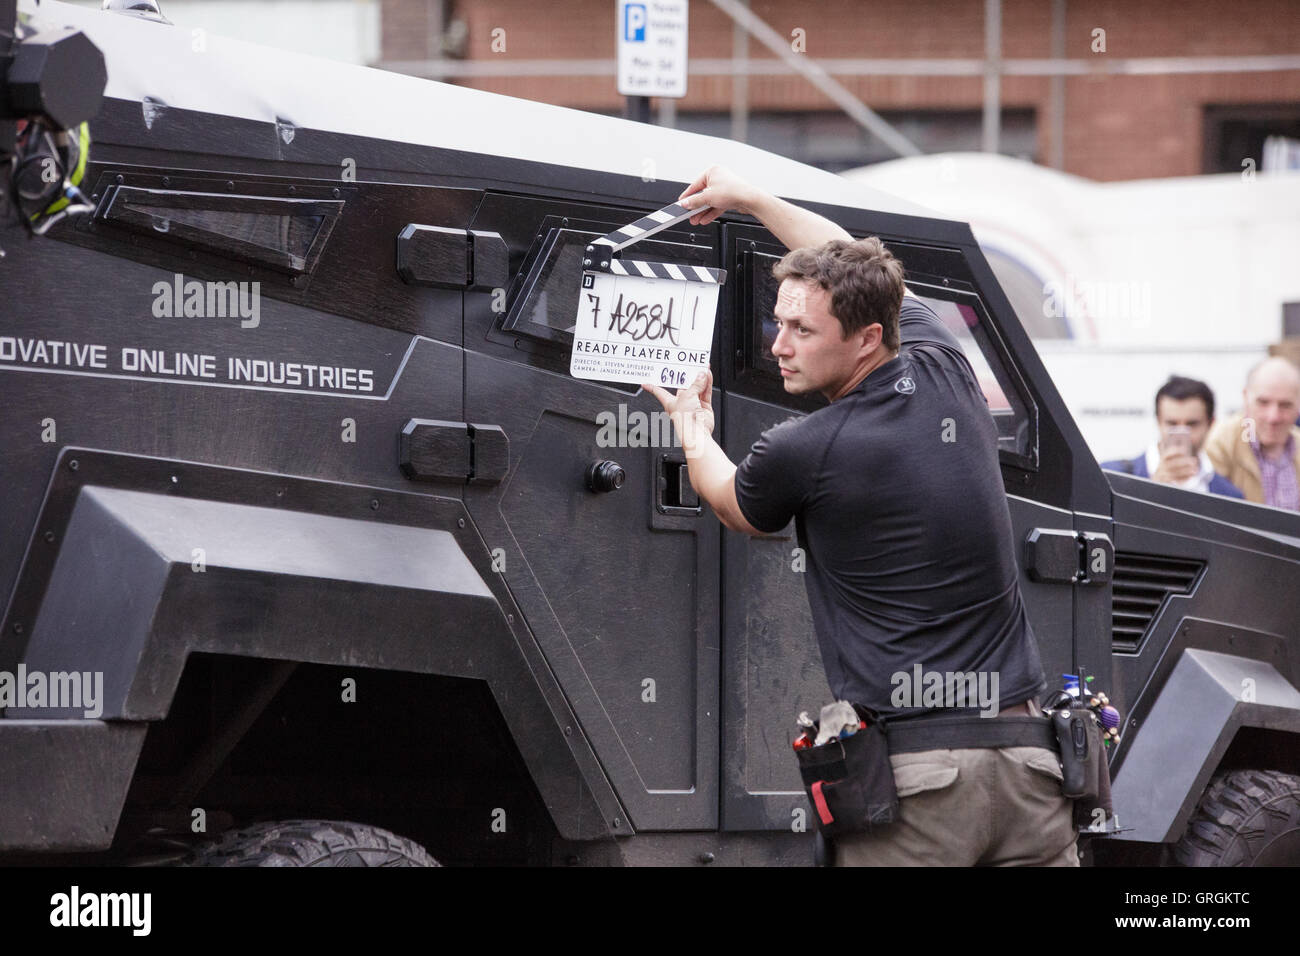 Birmingham, UK. 6, September, 2016 Filming takes place for Steven Speilbergs latest sci-fi movie 'Ready Player - Stock Image